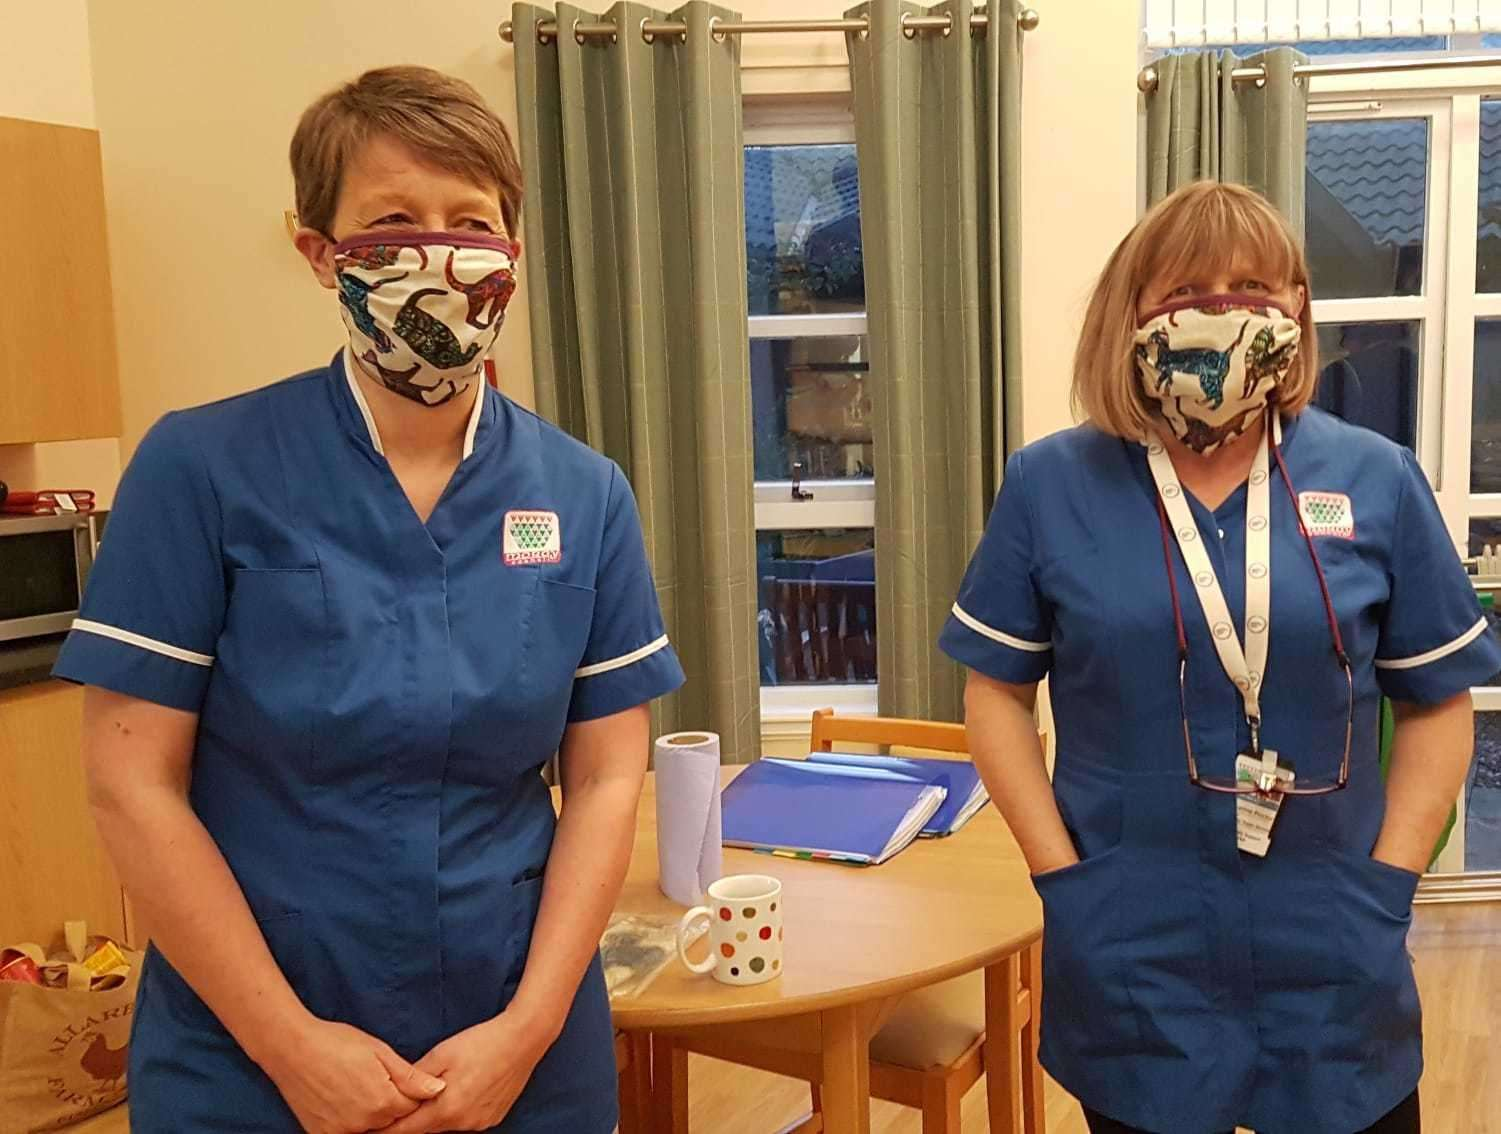 Two care workers model the masks made by the team.